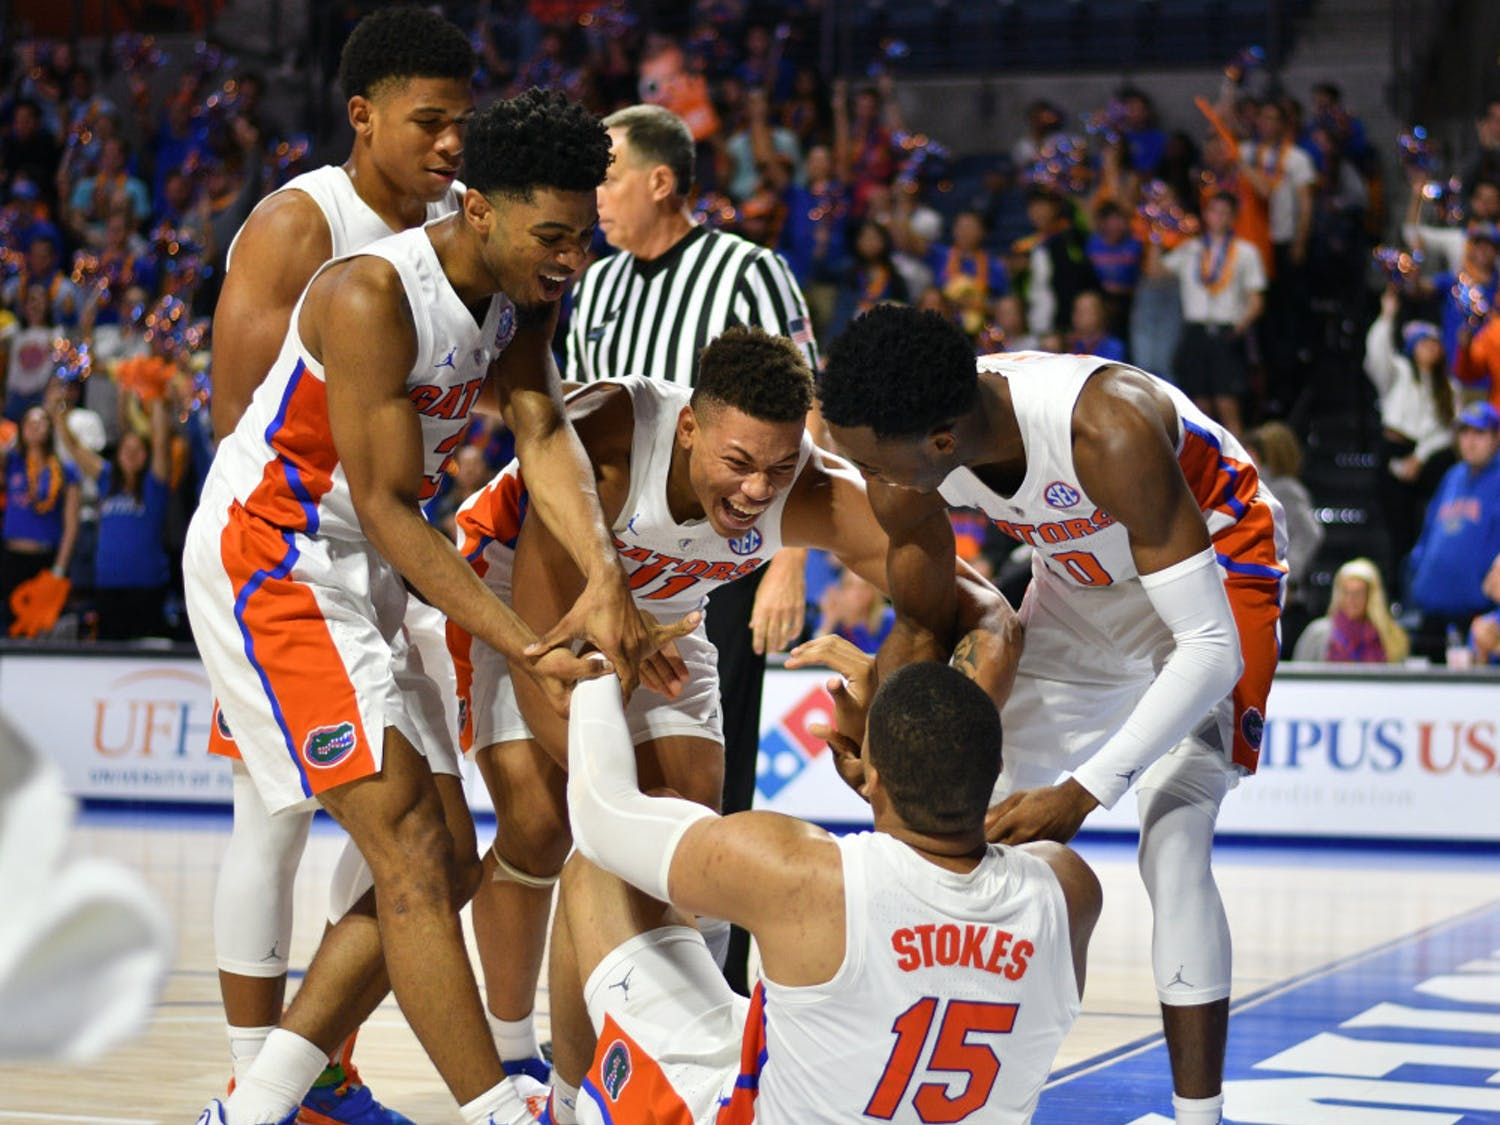 UF guard Jalen Hudson (second from left) averaged 9.3 points per game this season. In the last six games of the year, he averaged 12.5.